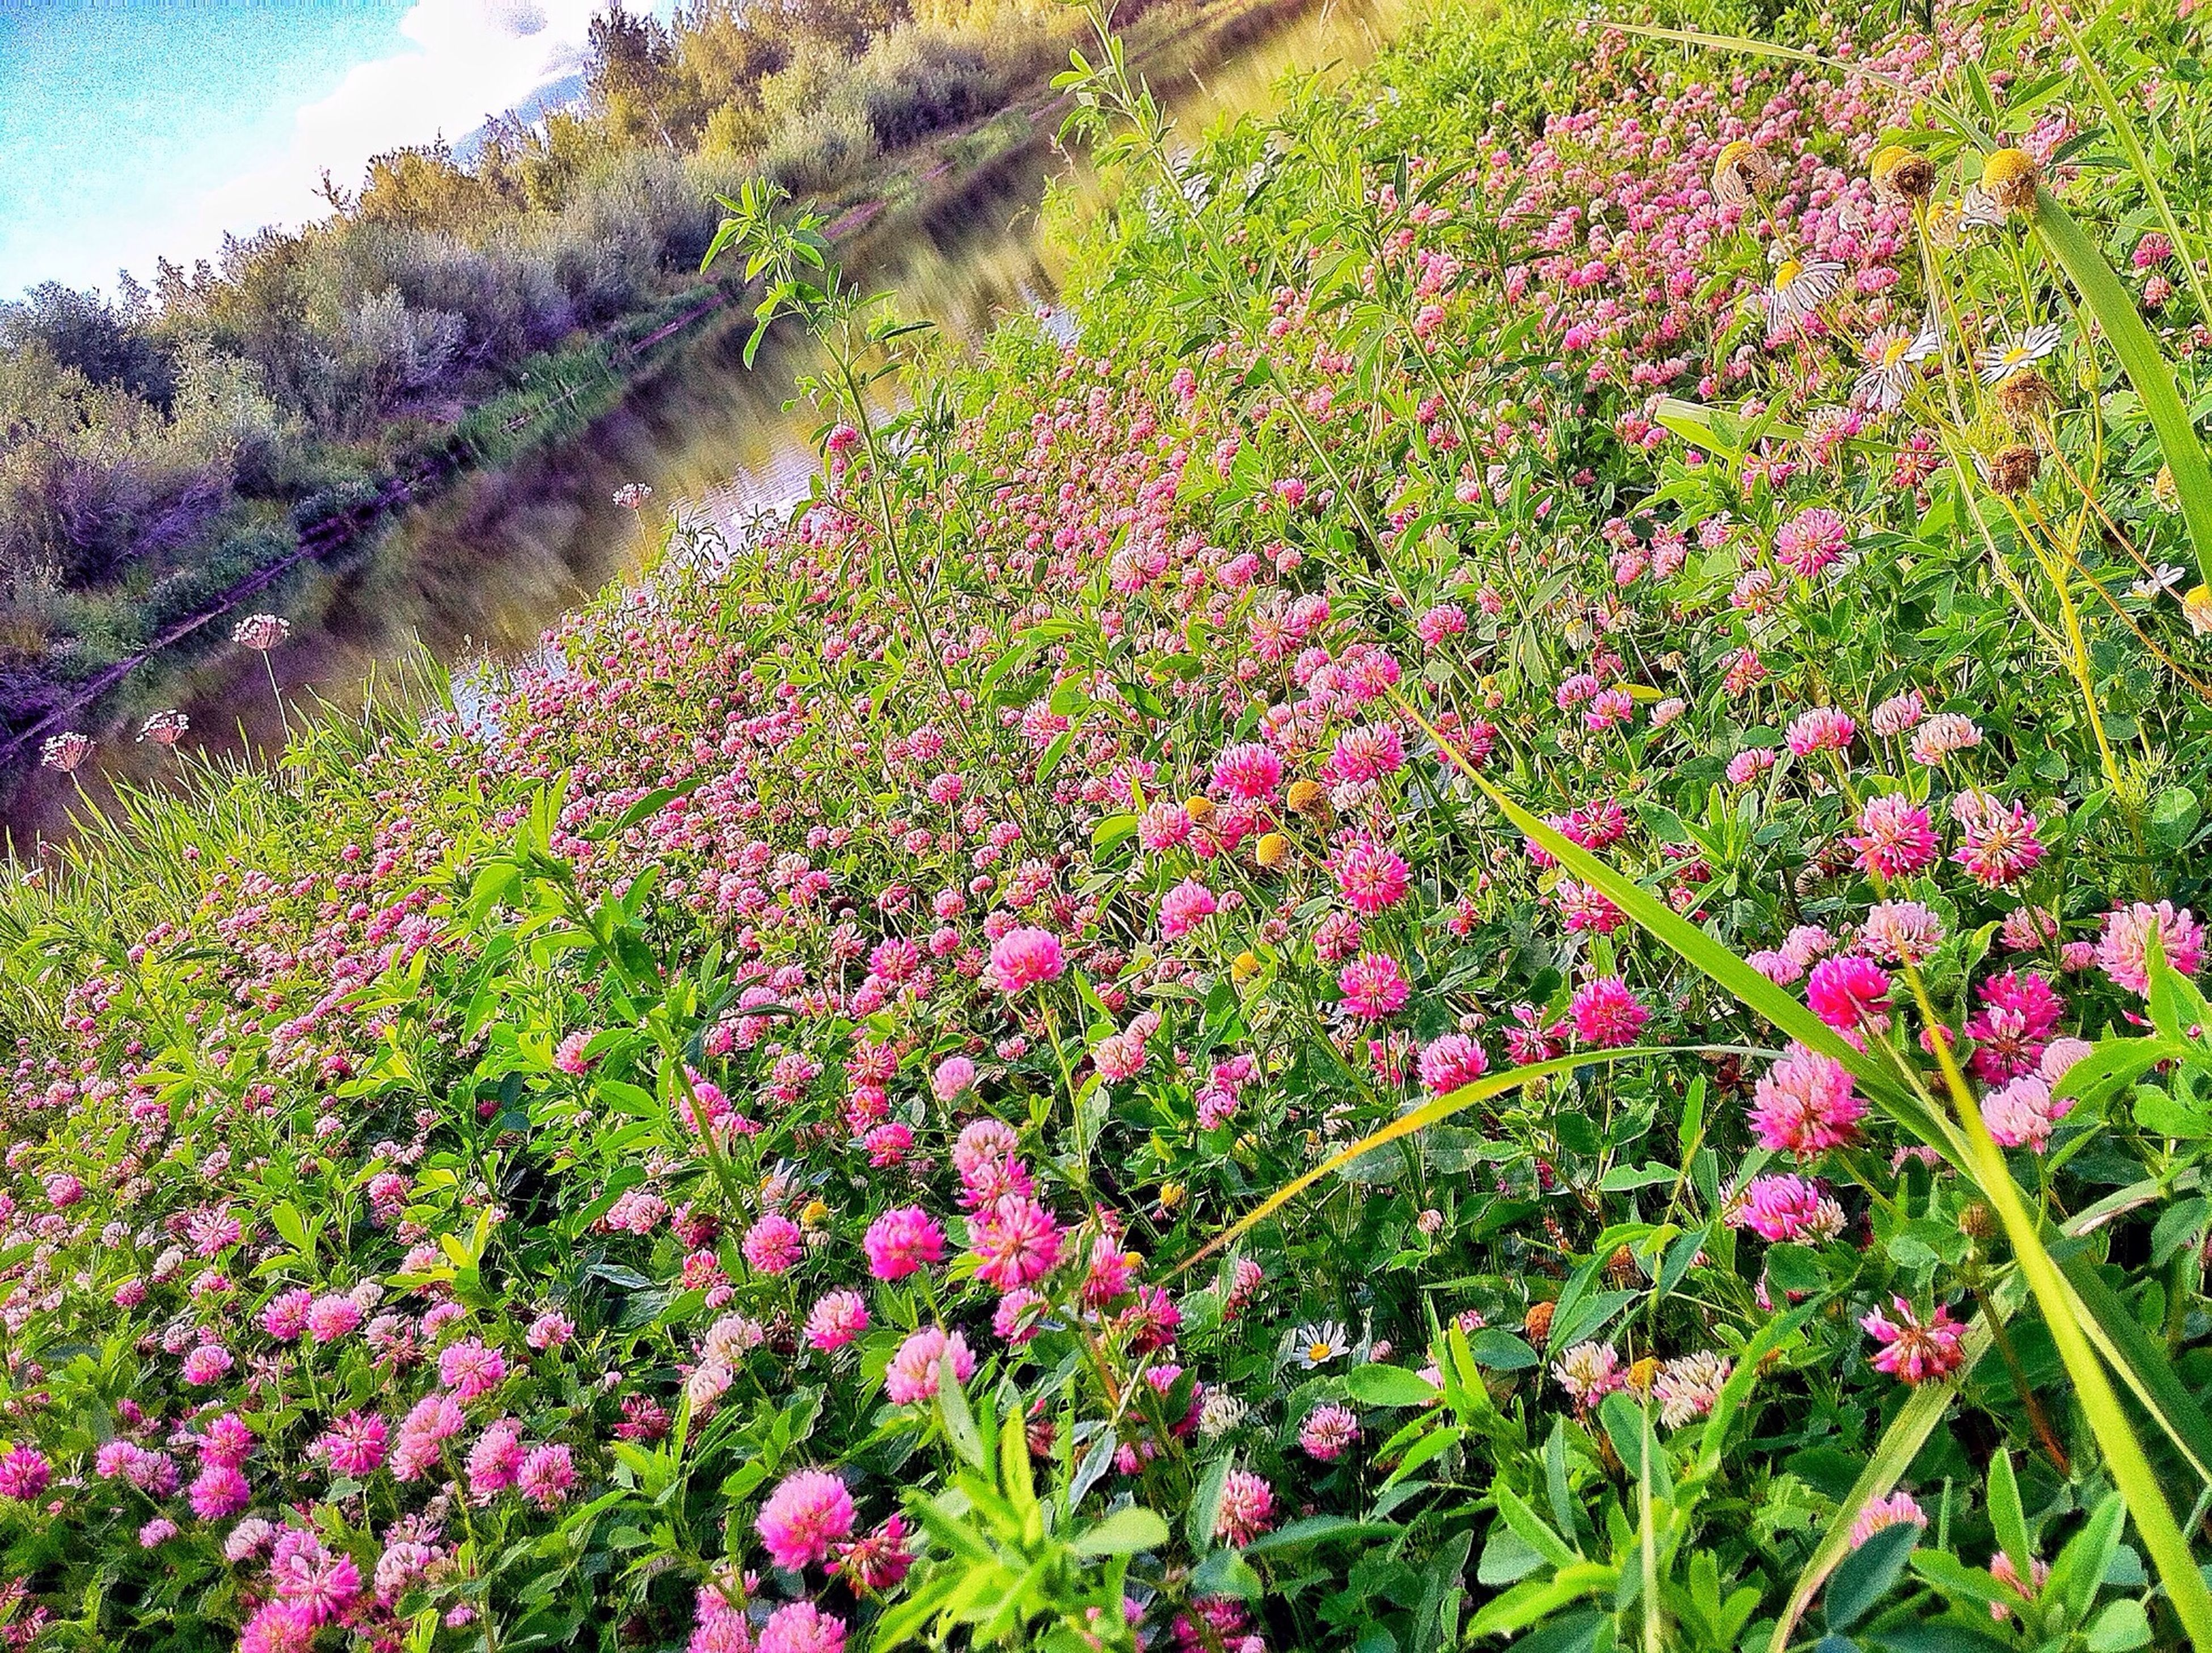 flower, growth, freshness, beauty in nature, nature, plant, blooming, fragility, tranquility, tranquil scene, field, tree, in bloom, scenics, wildflower, landscape, blossom, pink color, green color, abundance